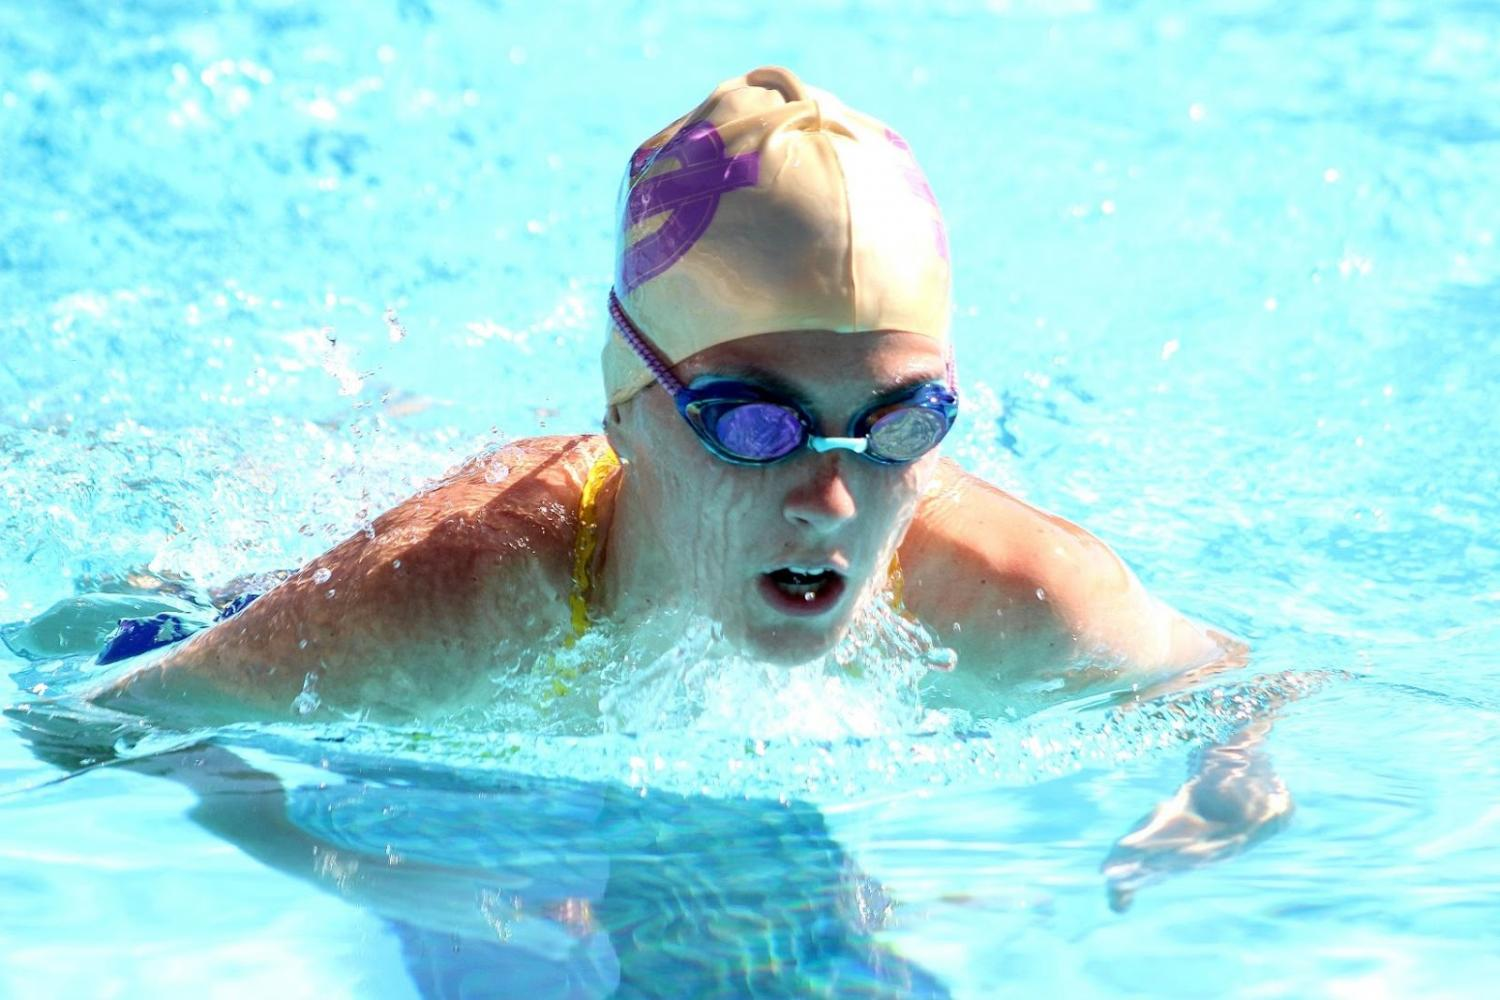 Senior Sophia Brown competes in a meet against South Hills. The boys and girls won 133-25 and 124-42 respectively.